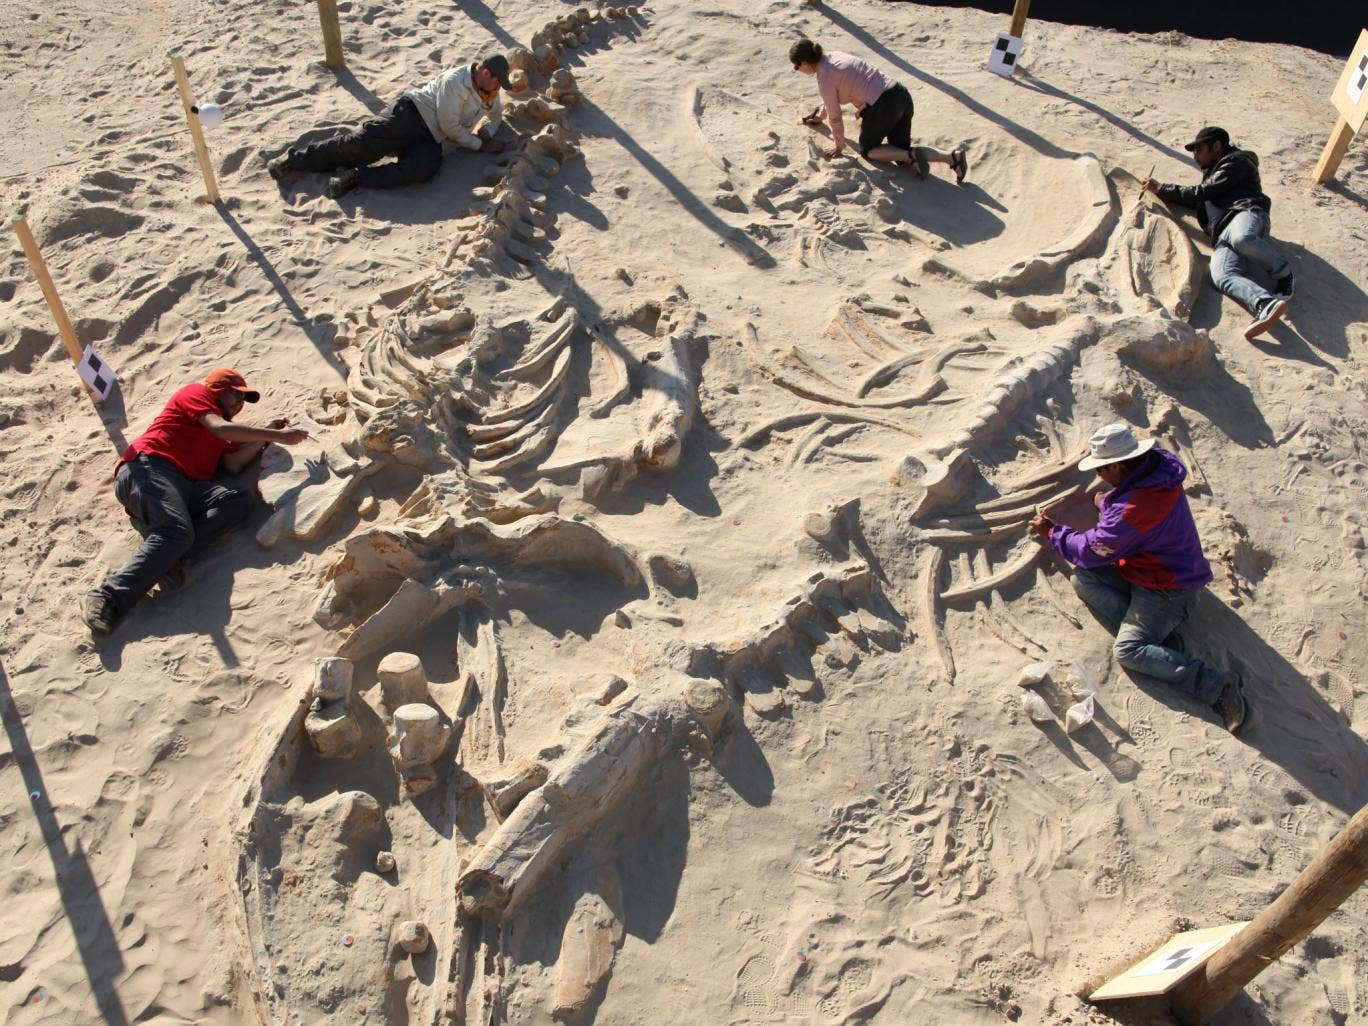 Chilean and Smithsonian paleontologists study several fossil whale skeletons at Cerro Ballena, next to the Pan-American Highway in the Atacama Region of Chile